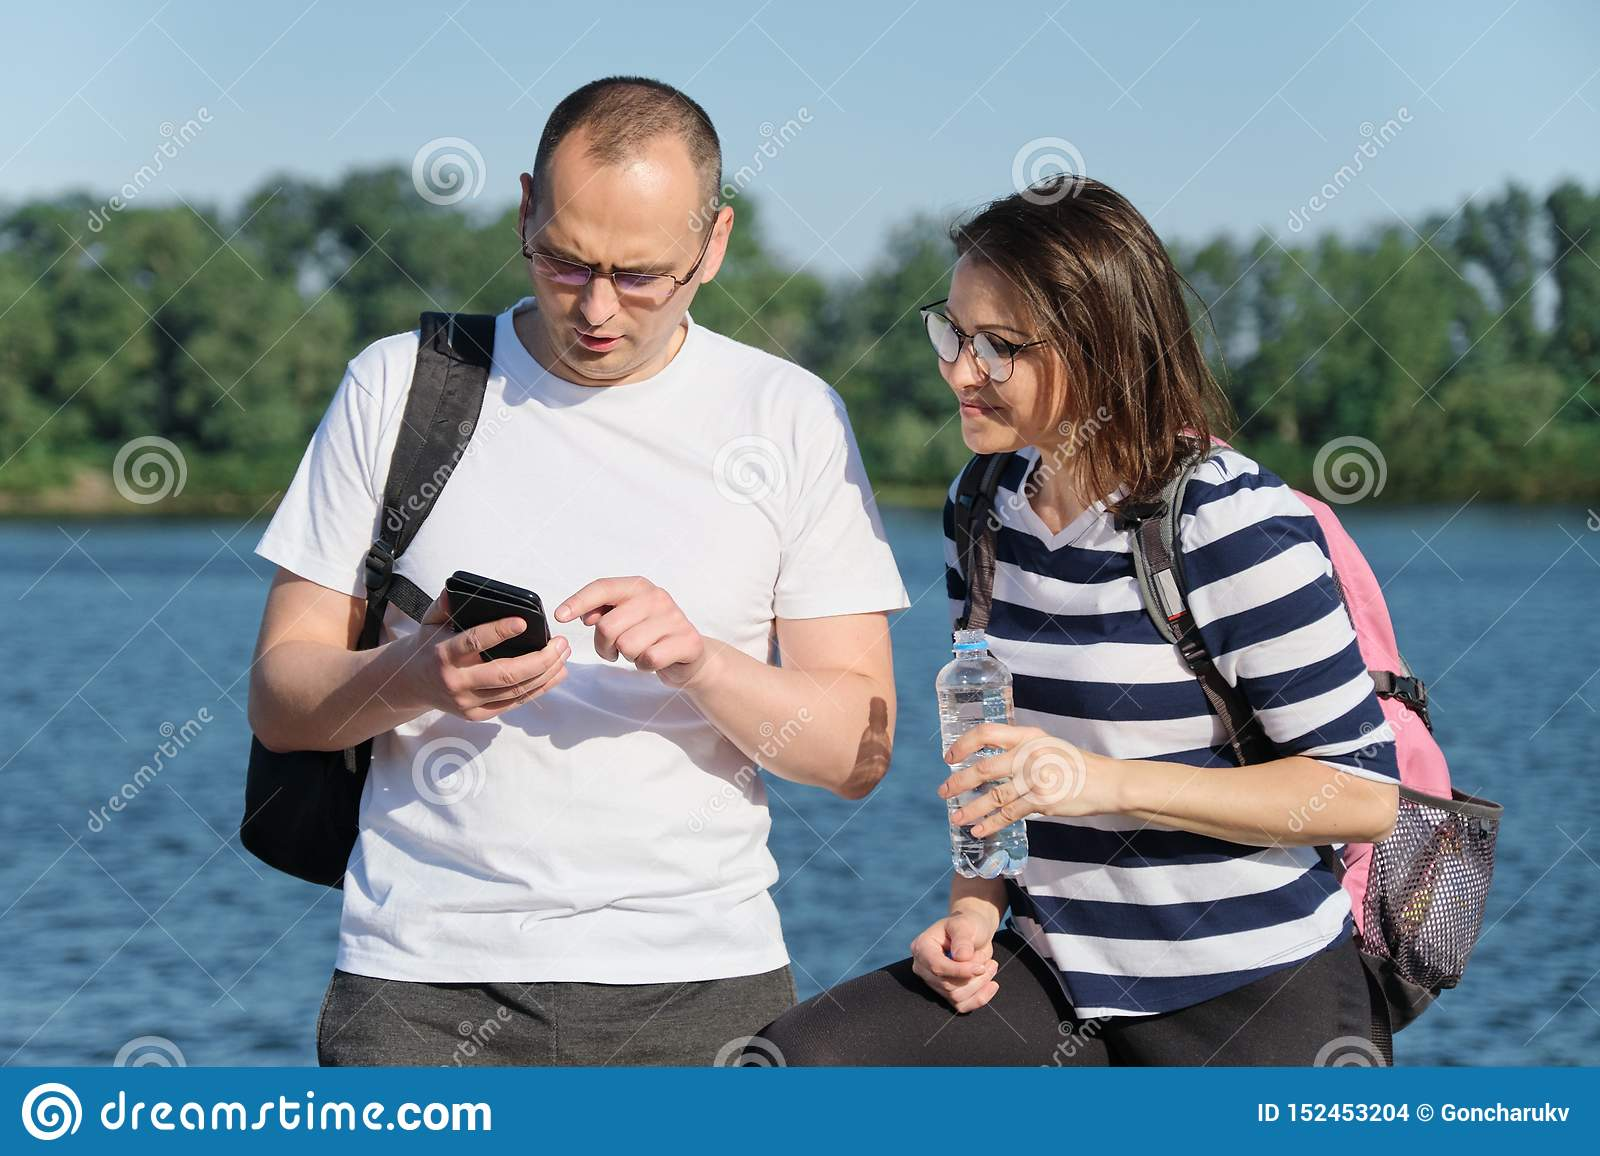 Outdoor mature couple using smartphone, man and woman talking walking in the park